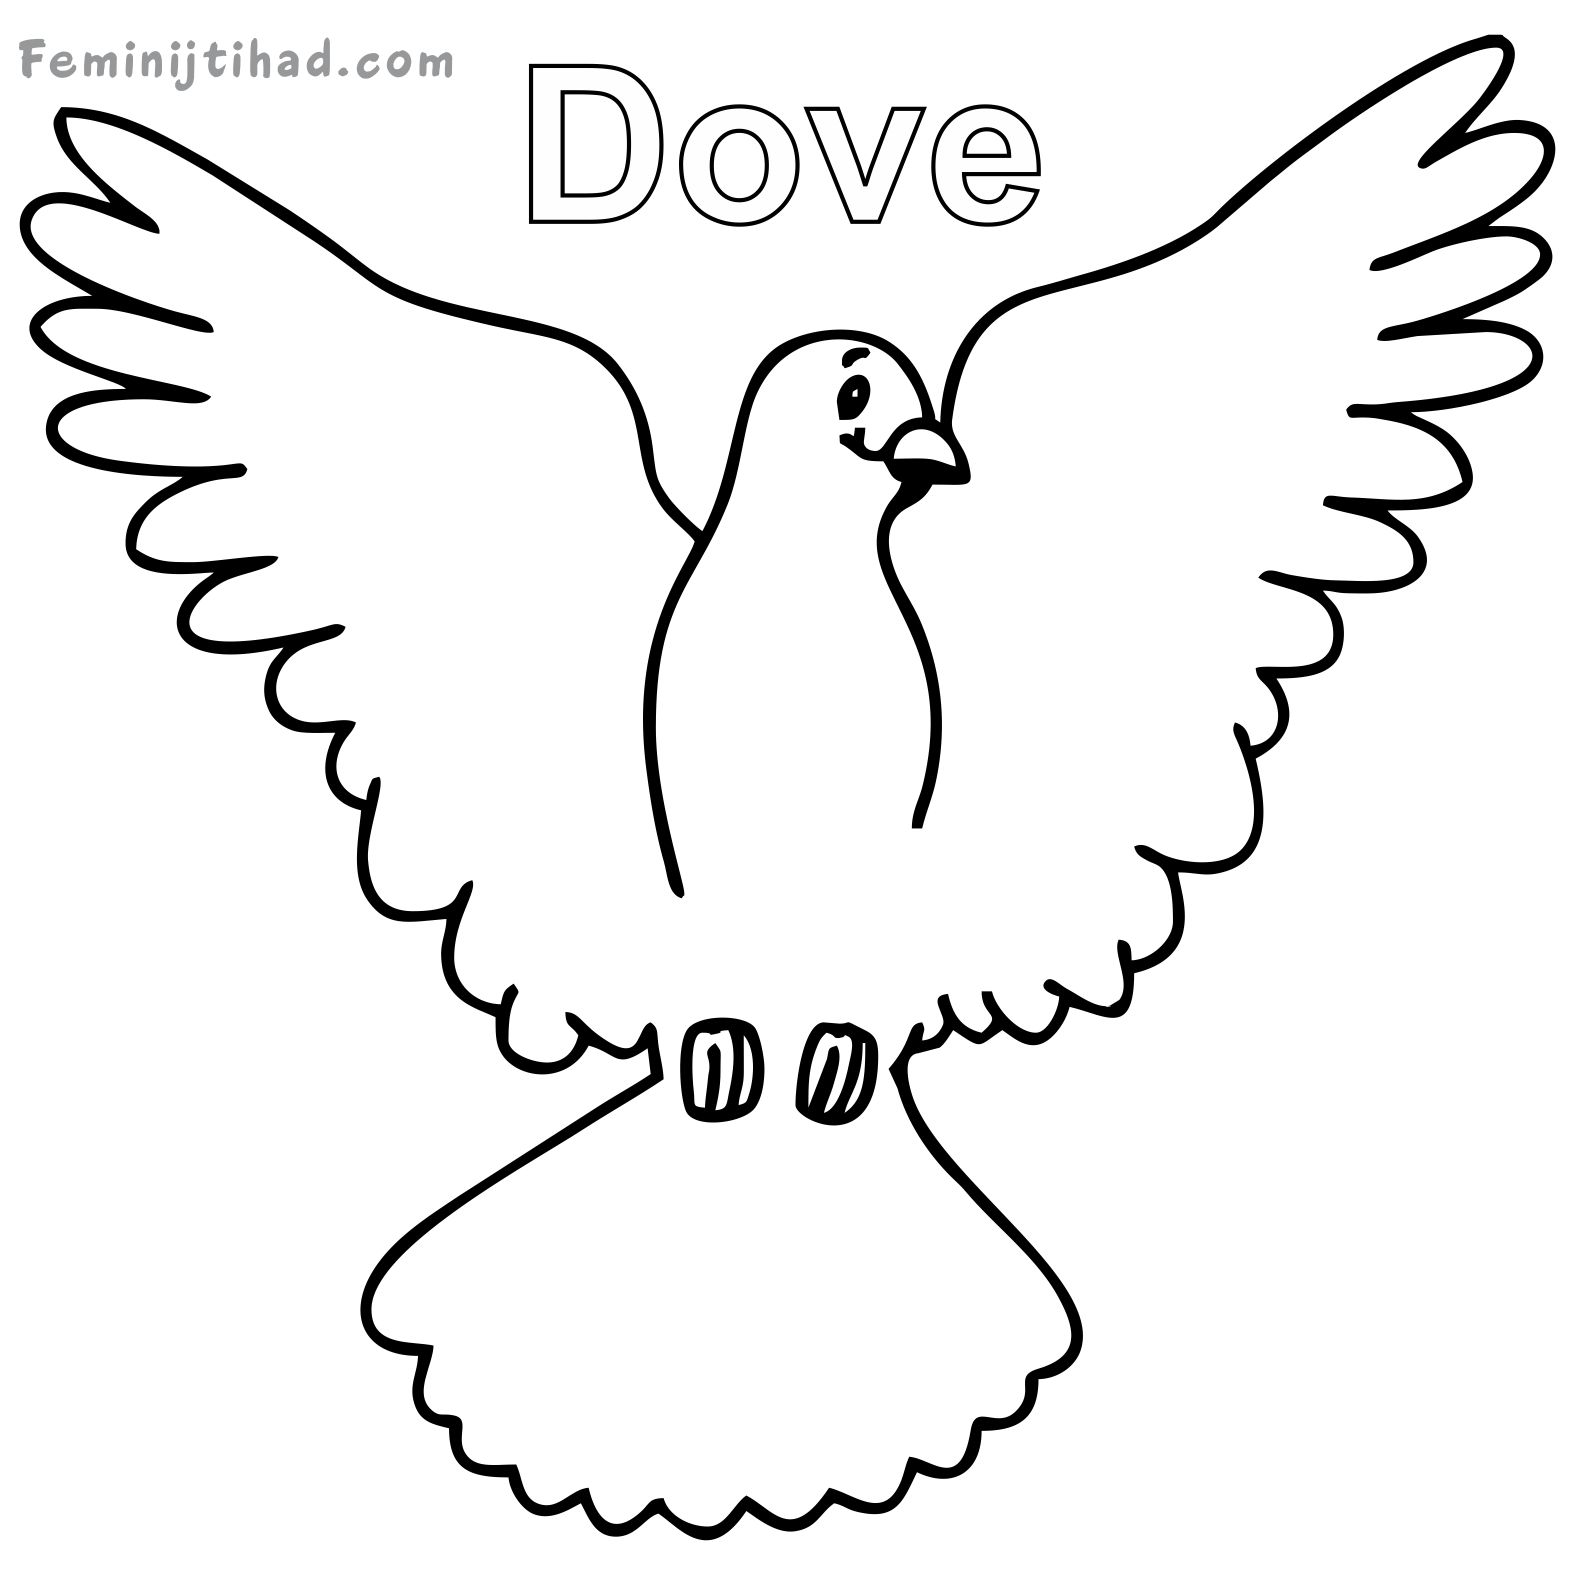 pictures of doves to color dove coloring page at getcoloringscom free printable doves to of color pictures